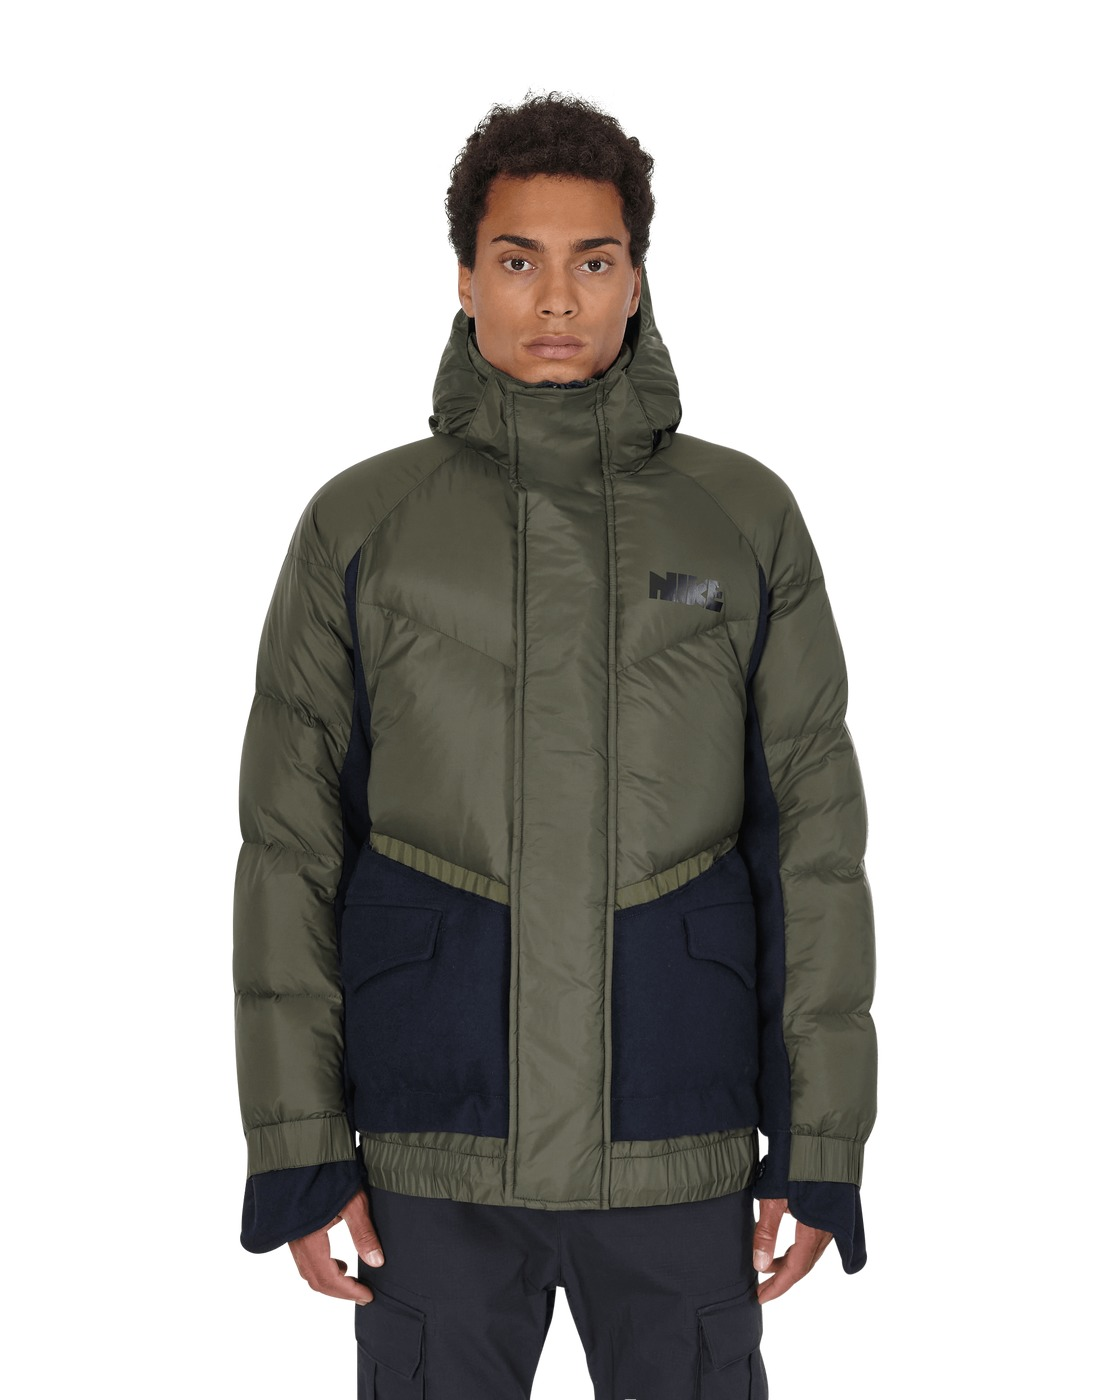 Nike Special Project Sacai Parka Sequoia